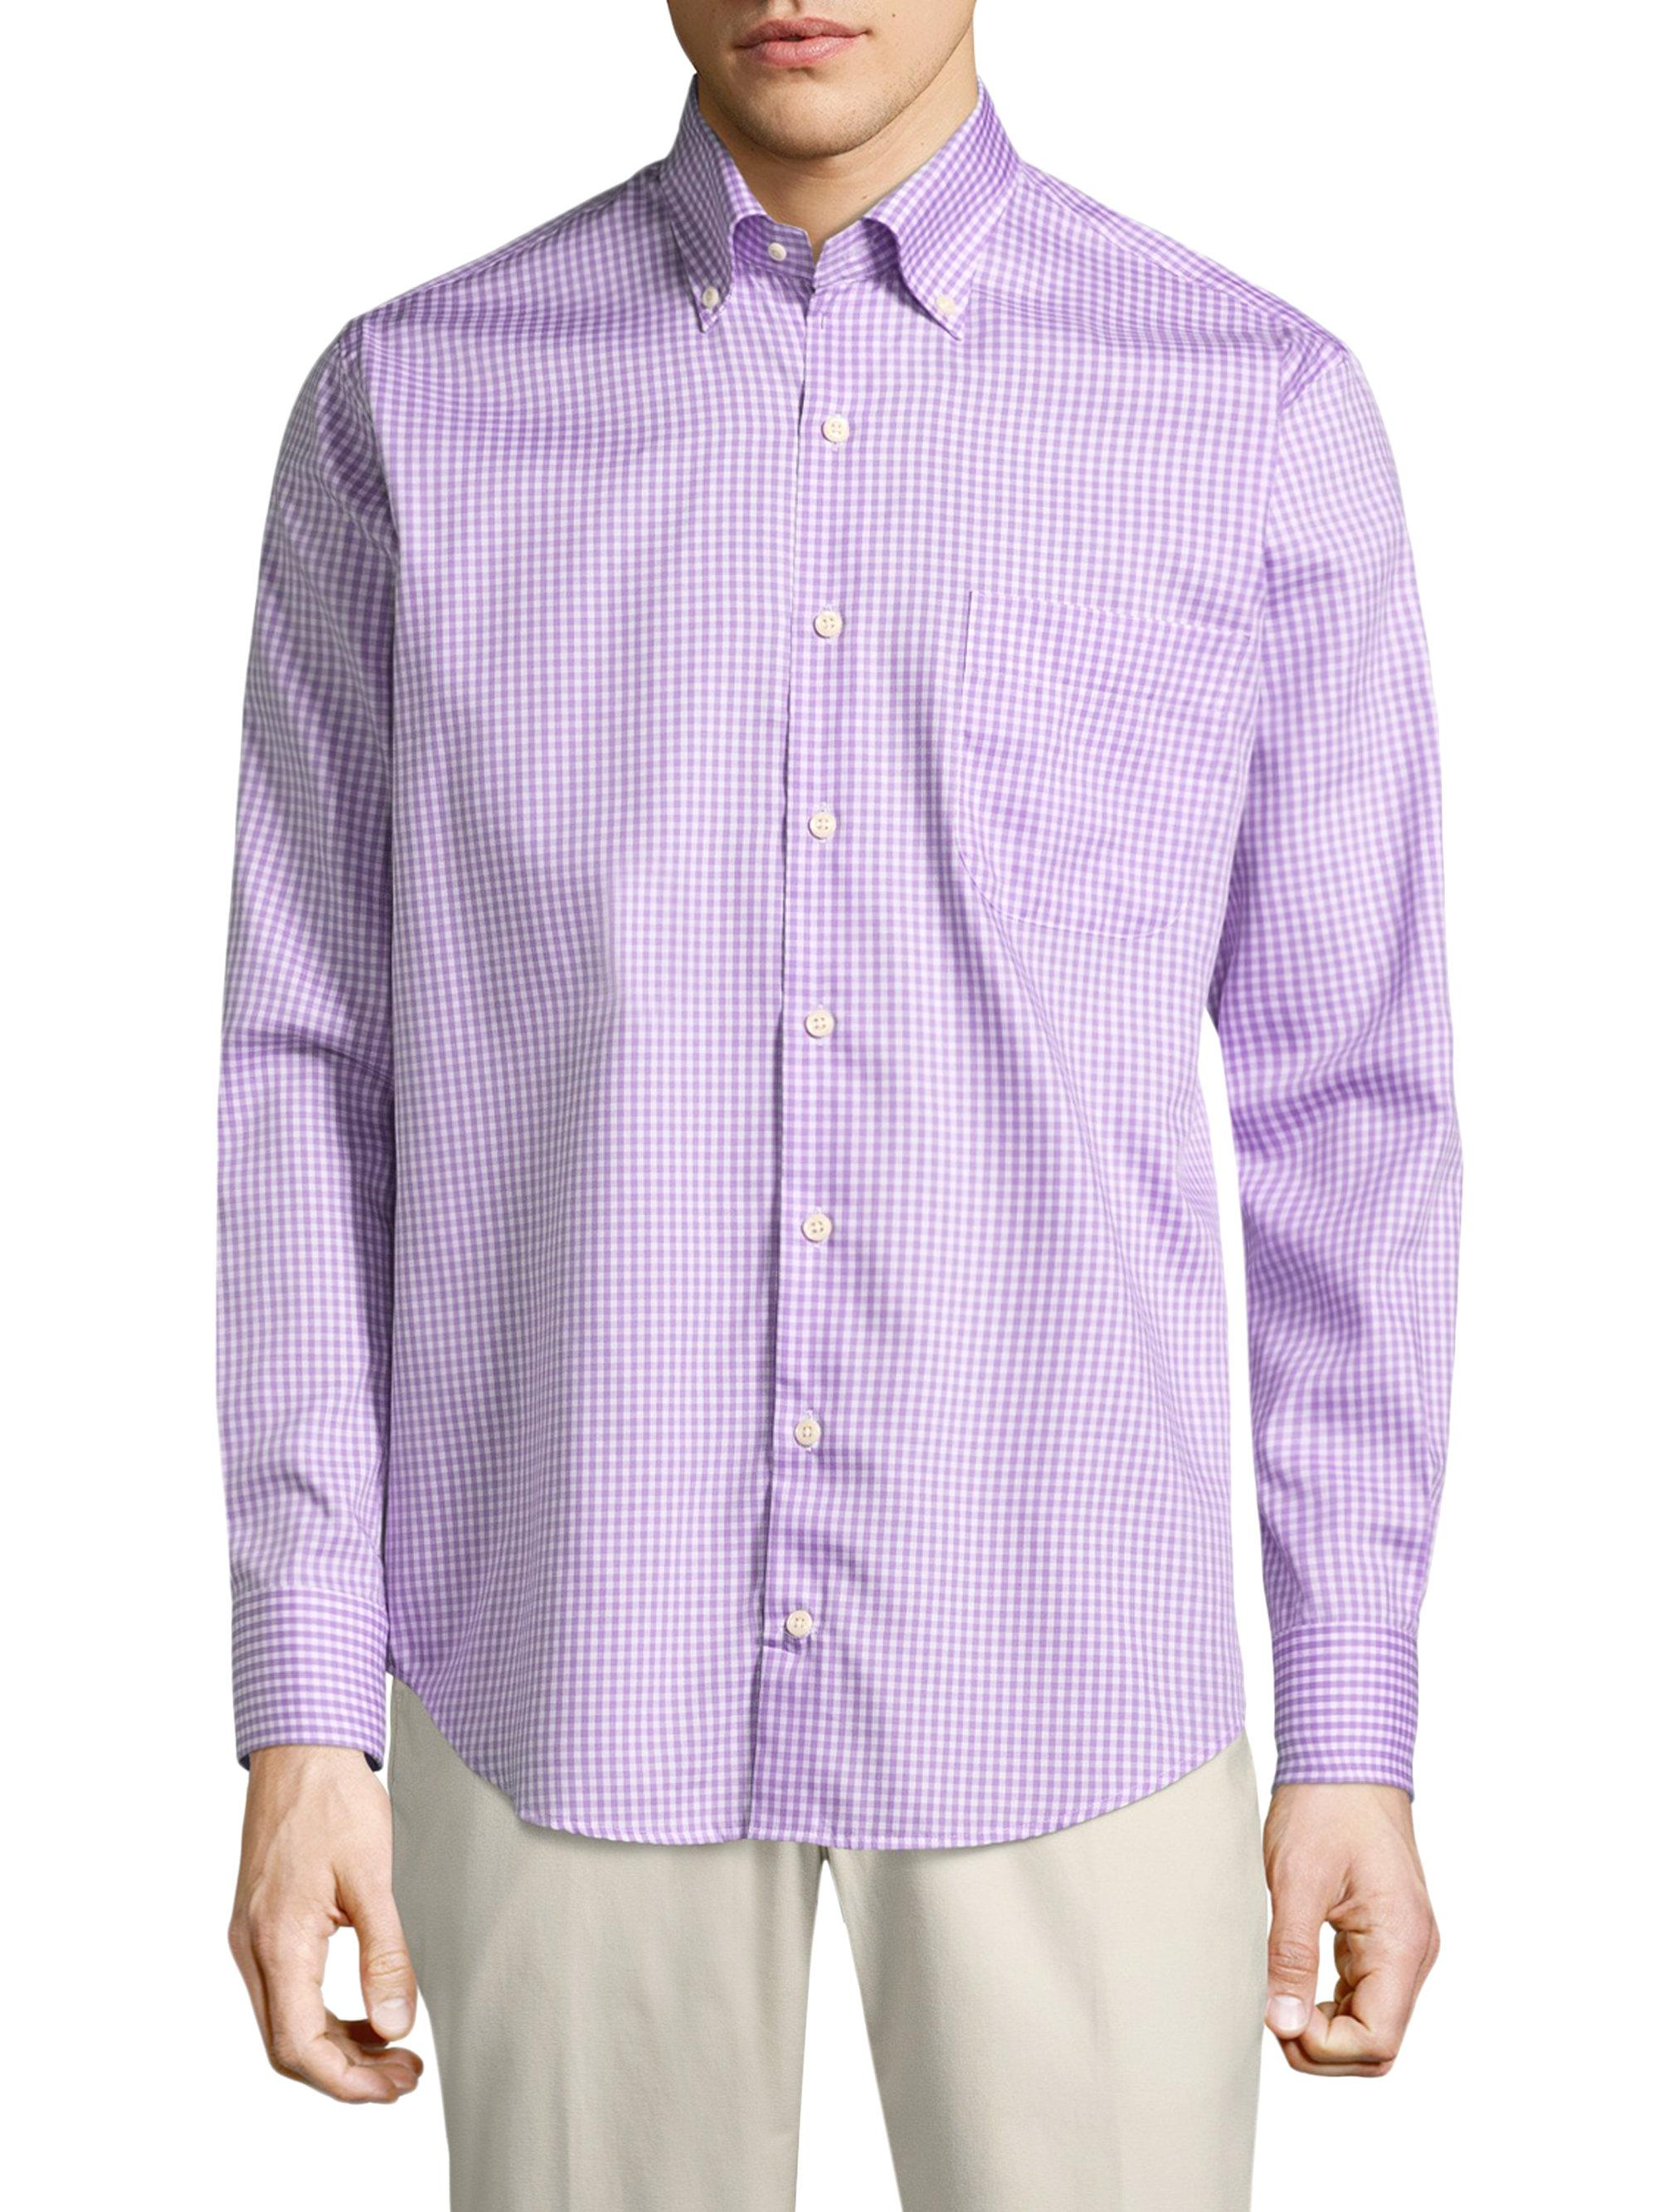 Lyst peter millar crown gingham button down shirt in for Men s purple gingham shirt